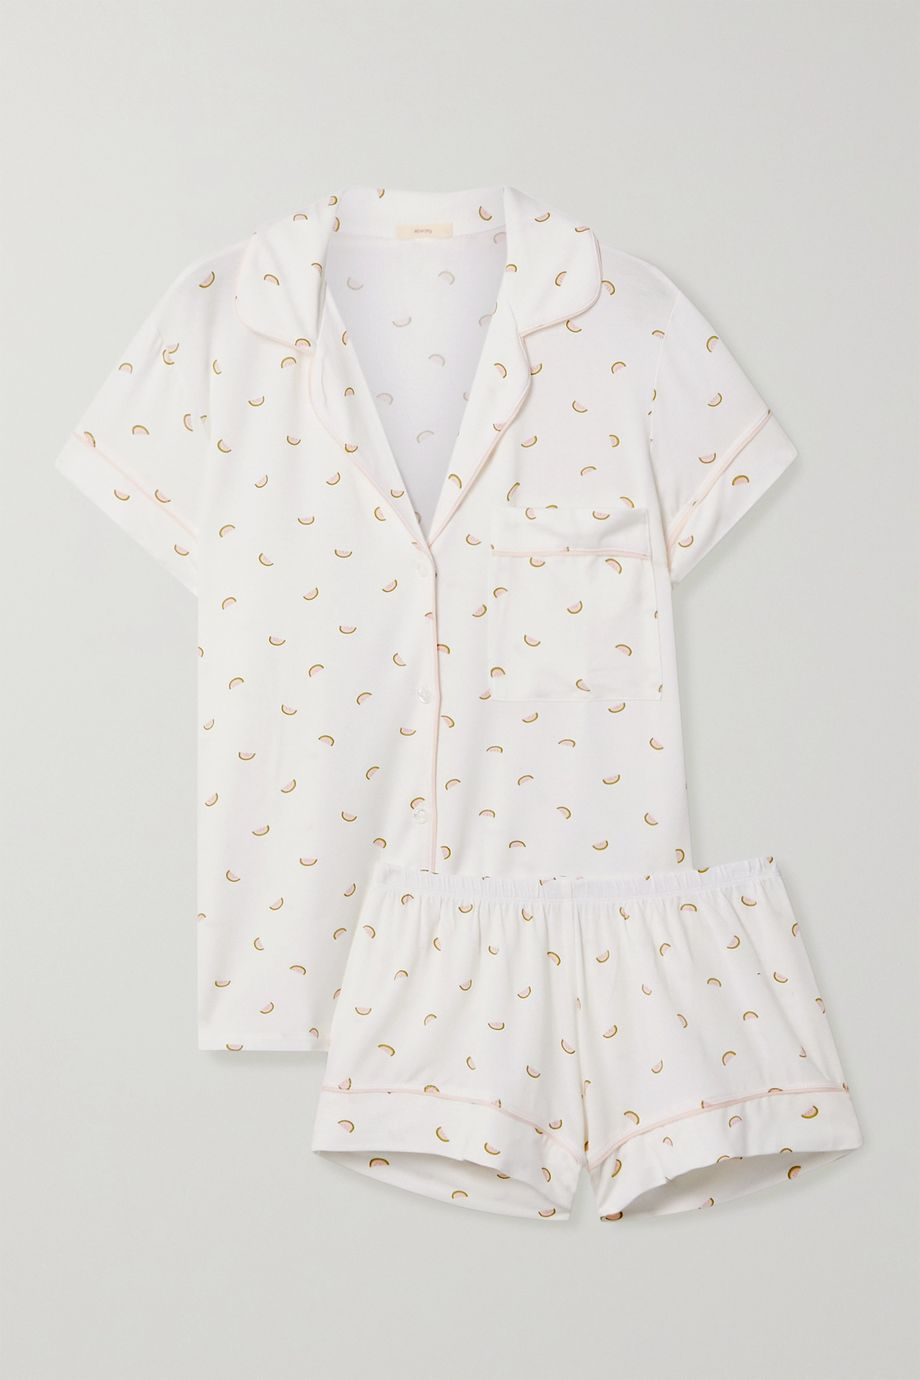 Eberjey Giving printed stretch-modal jersey pajama set